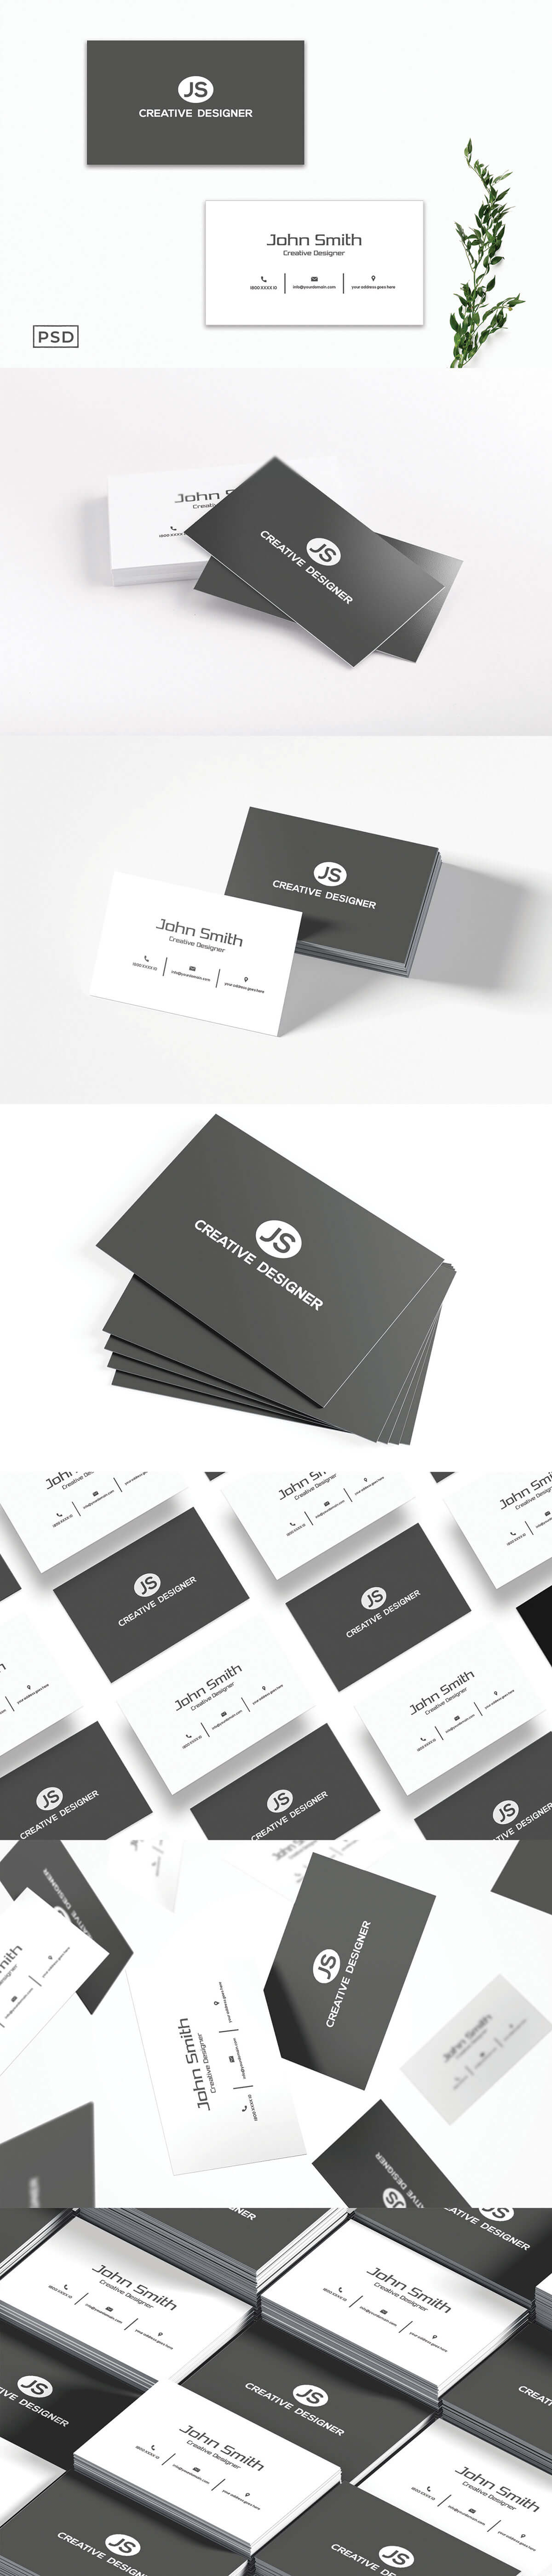 Free Minimal Business Card Template V6